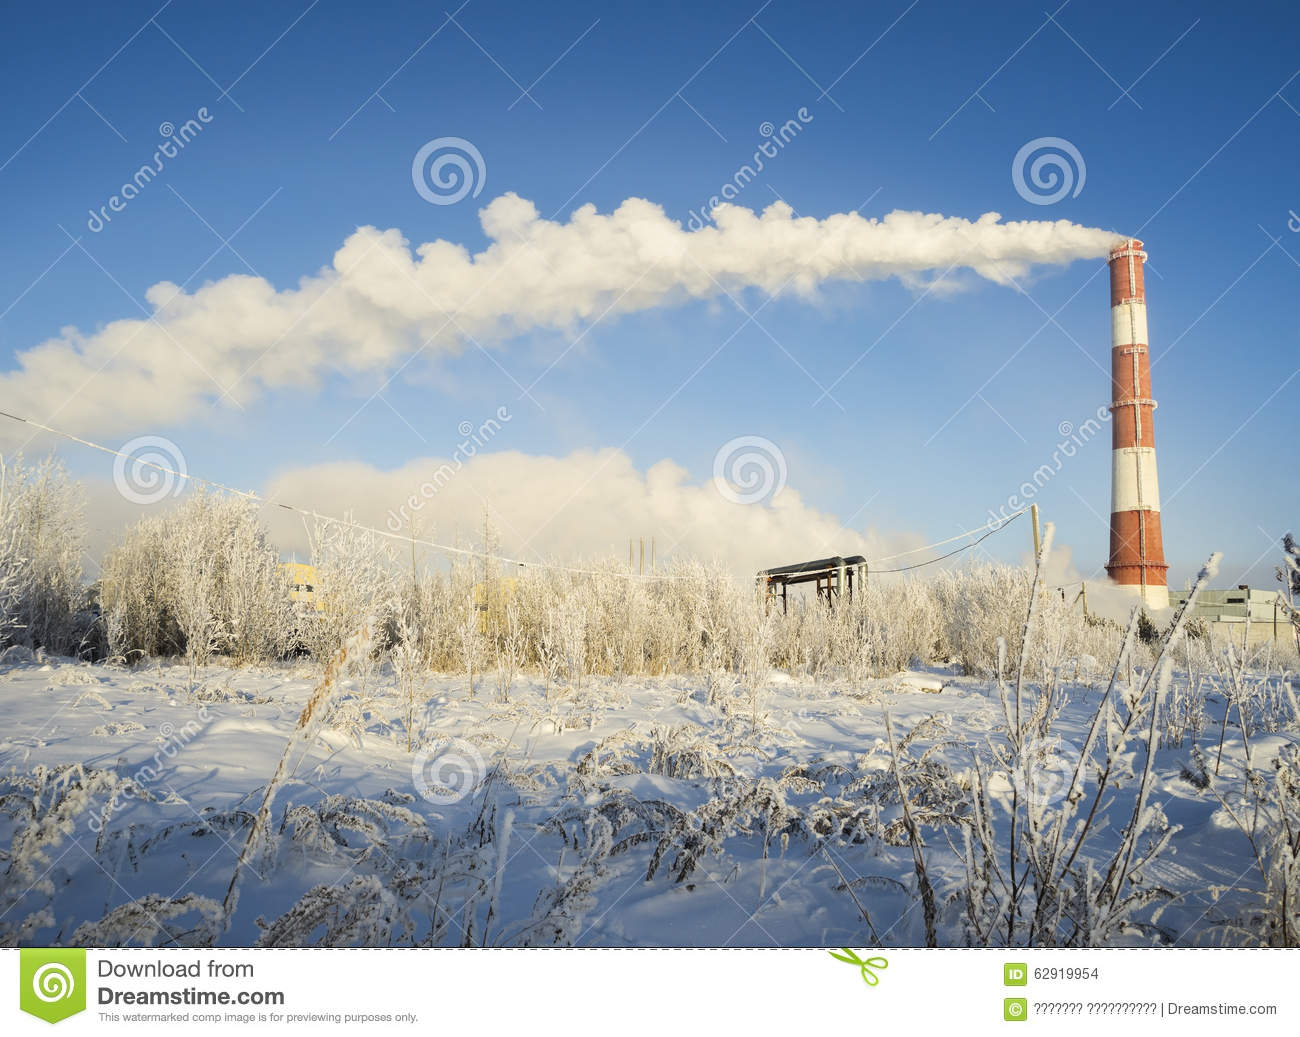 The Clouds Of Steam Coming From The Chimney In Winter . Stock Photo ...